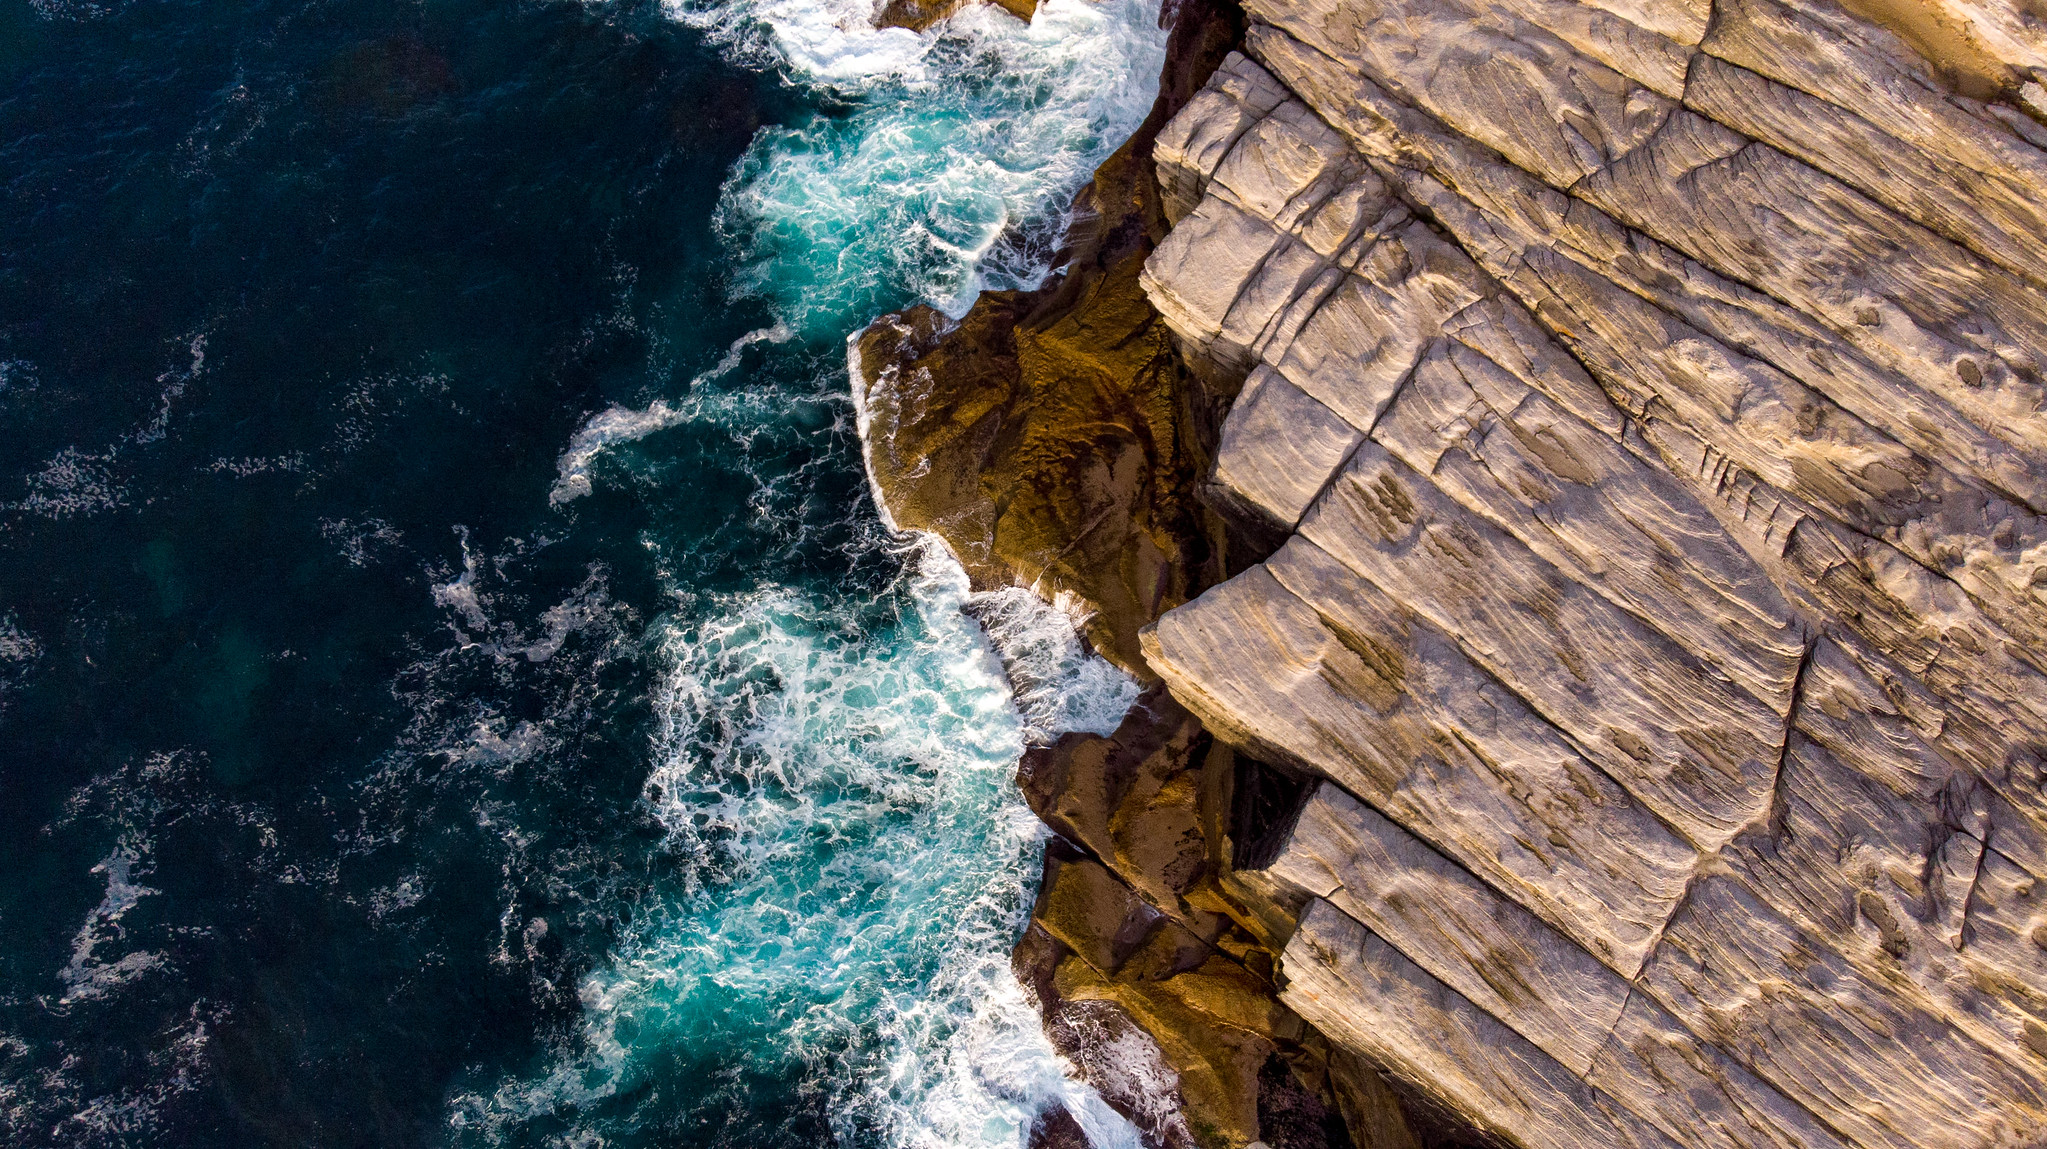 Cliff side photo from drone